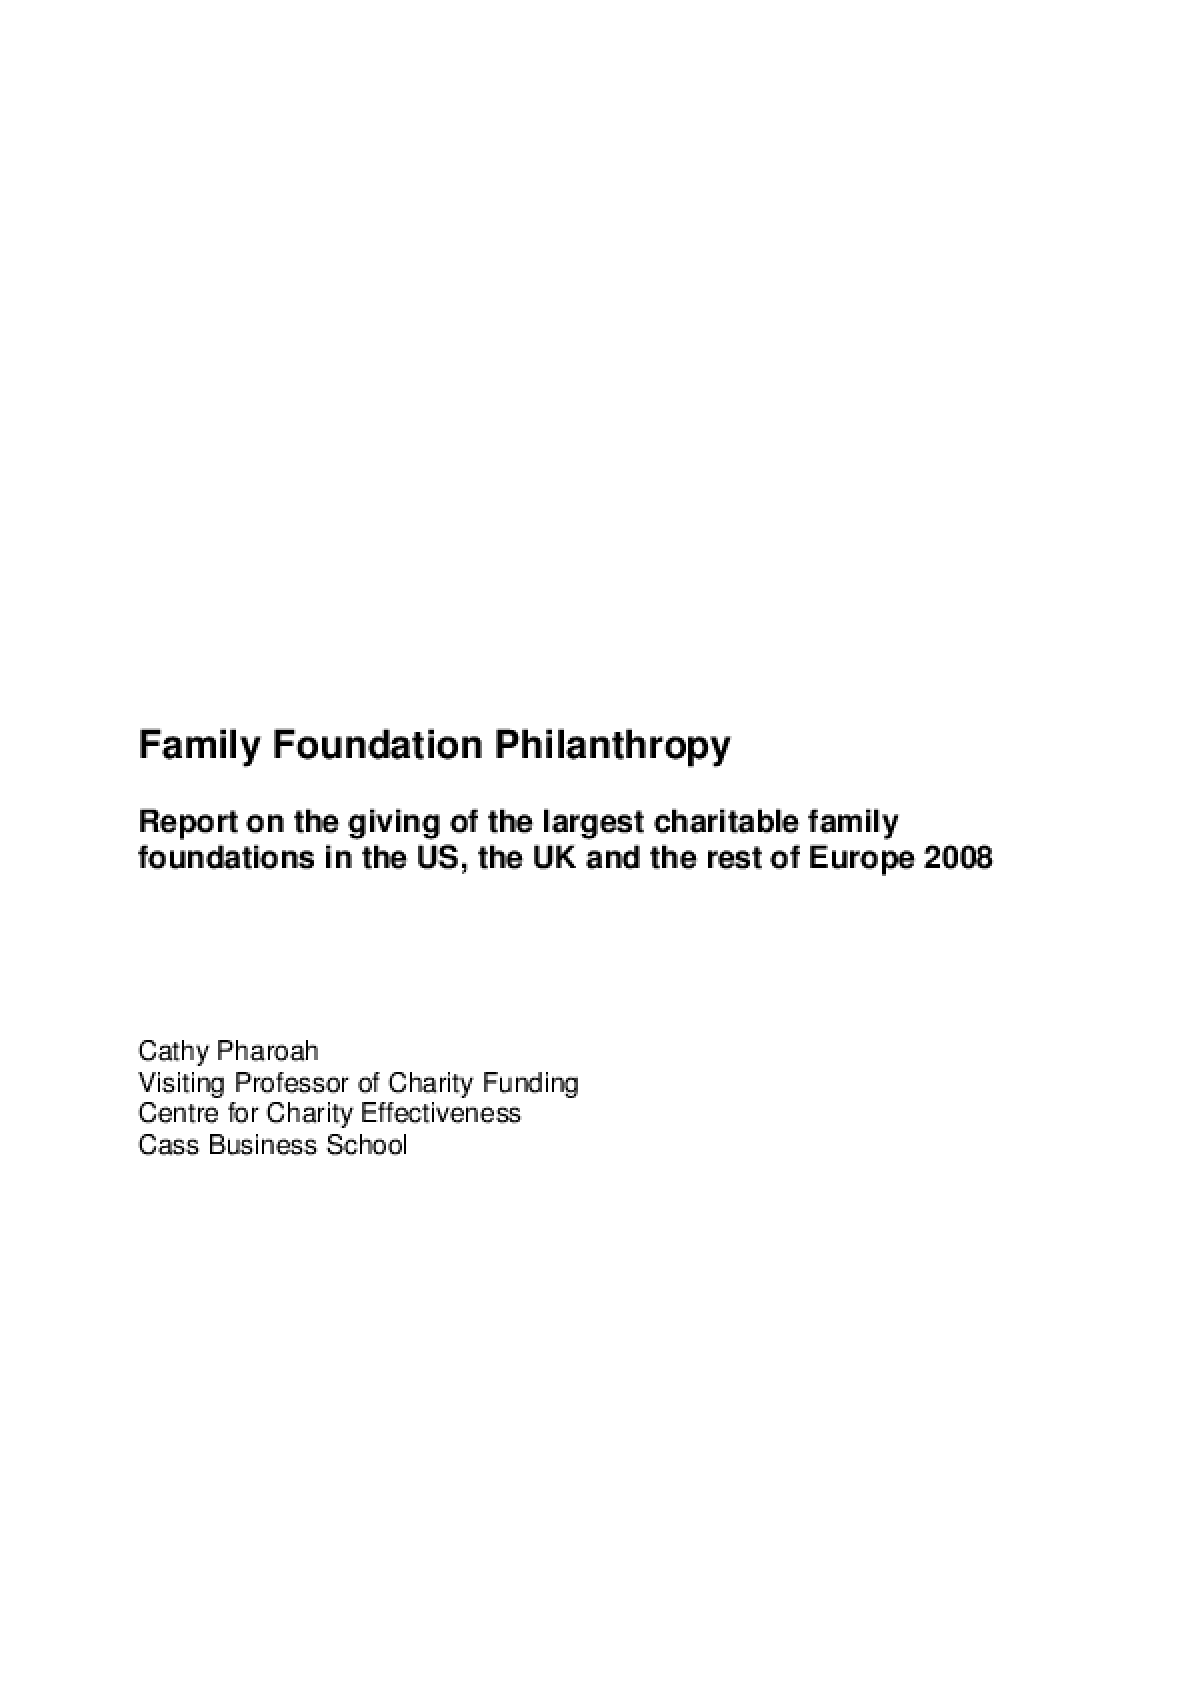 Family Foundation Philanthropy: report on the giving of the largest charitable family foundations in the US, the UK and the rest of Europe